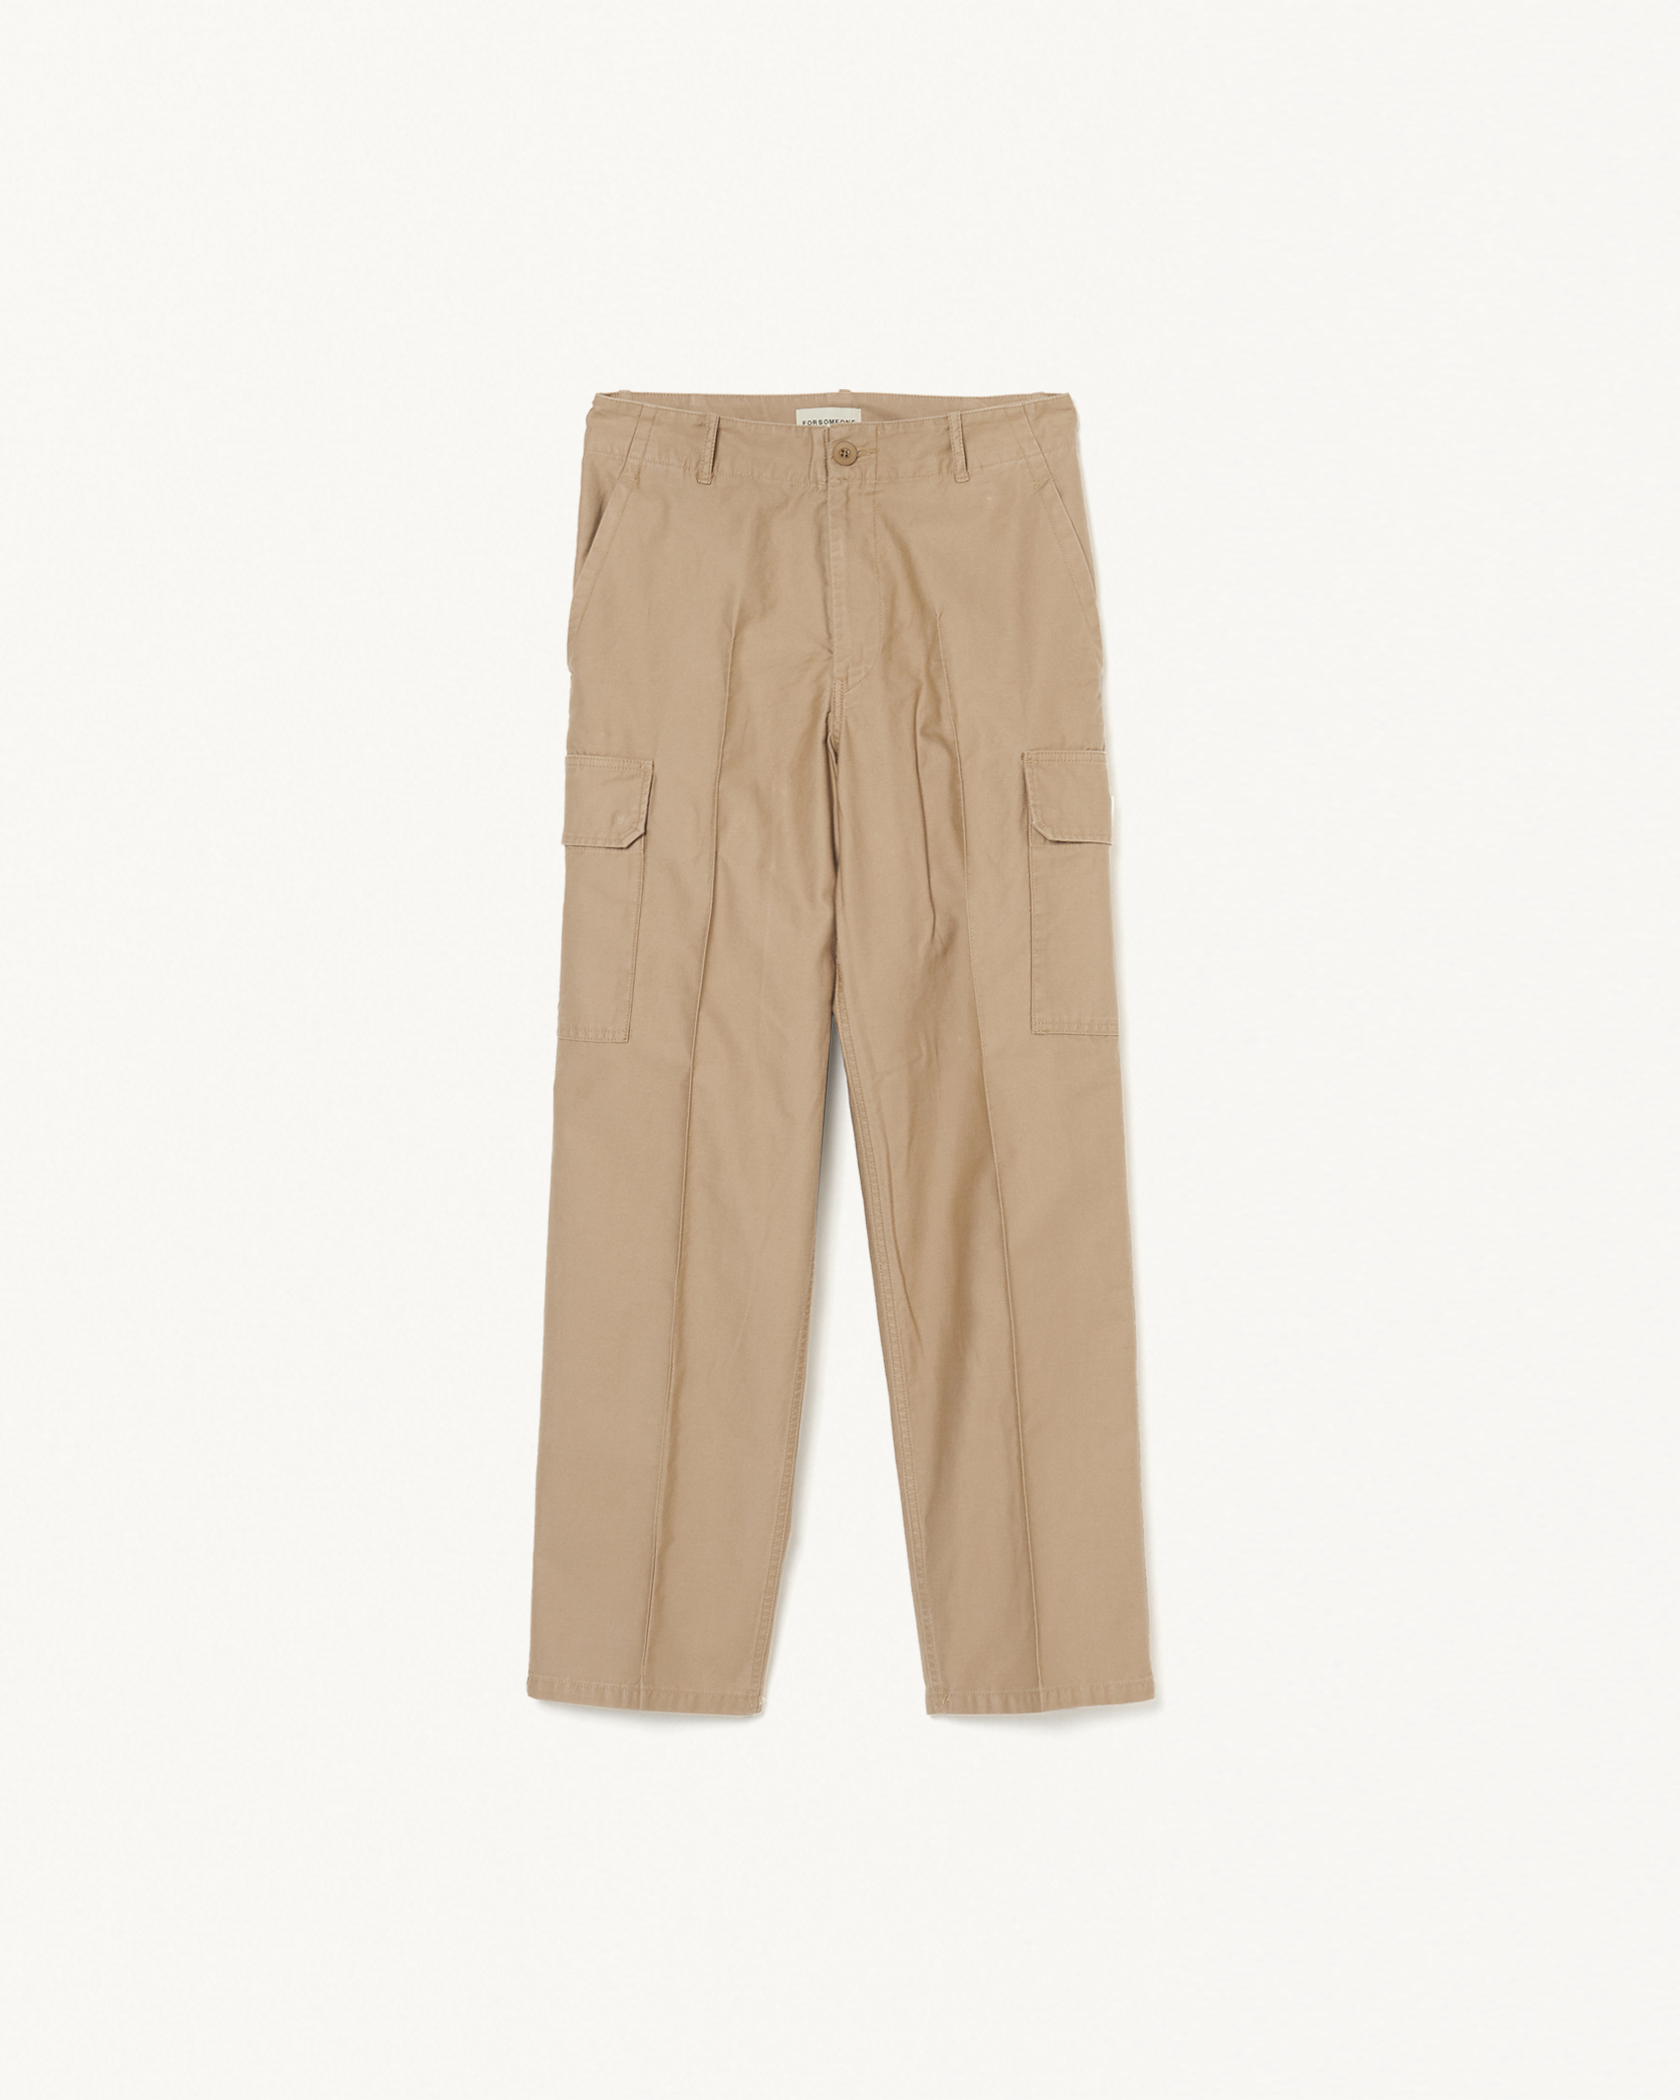 CARGO TROUSERS 詳細画像 Olive 3